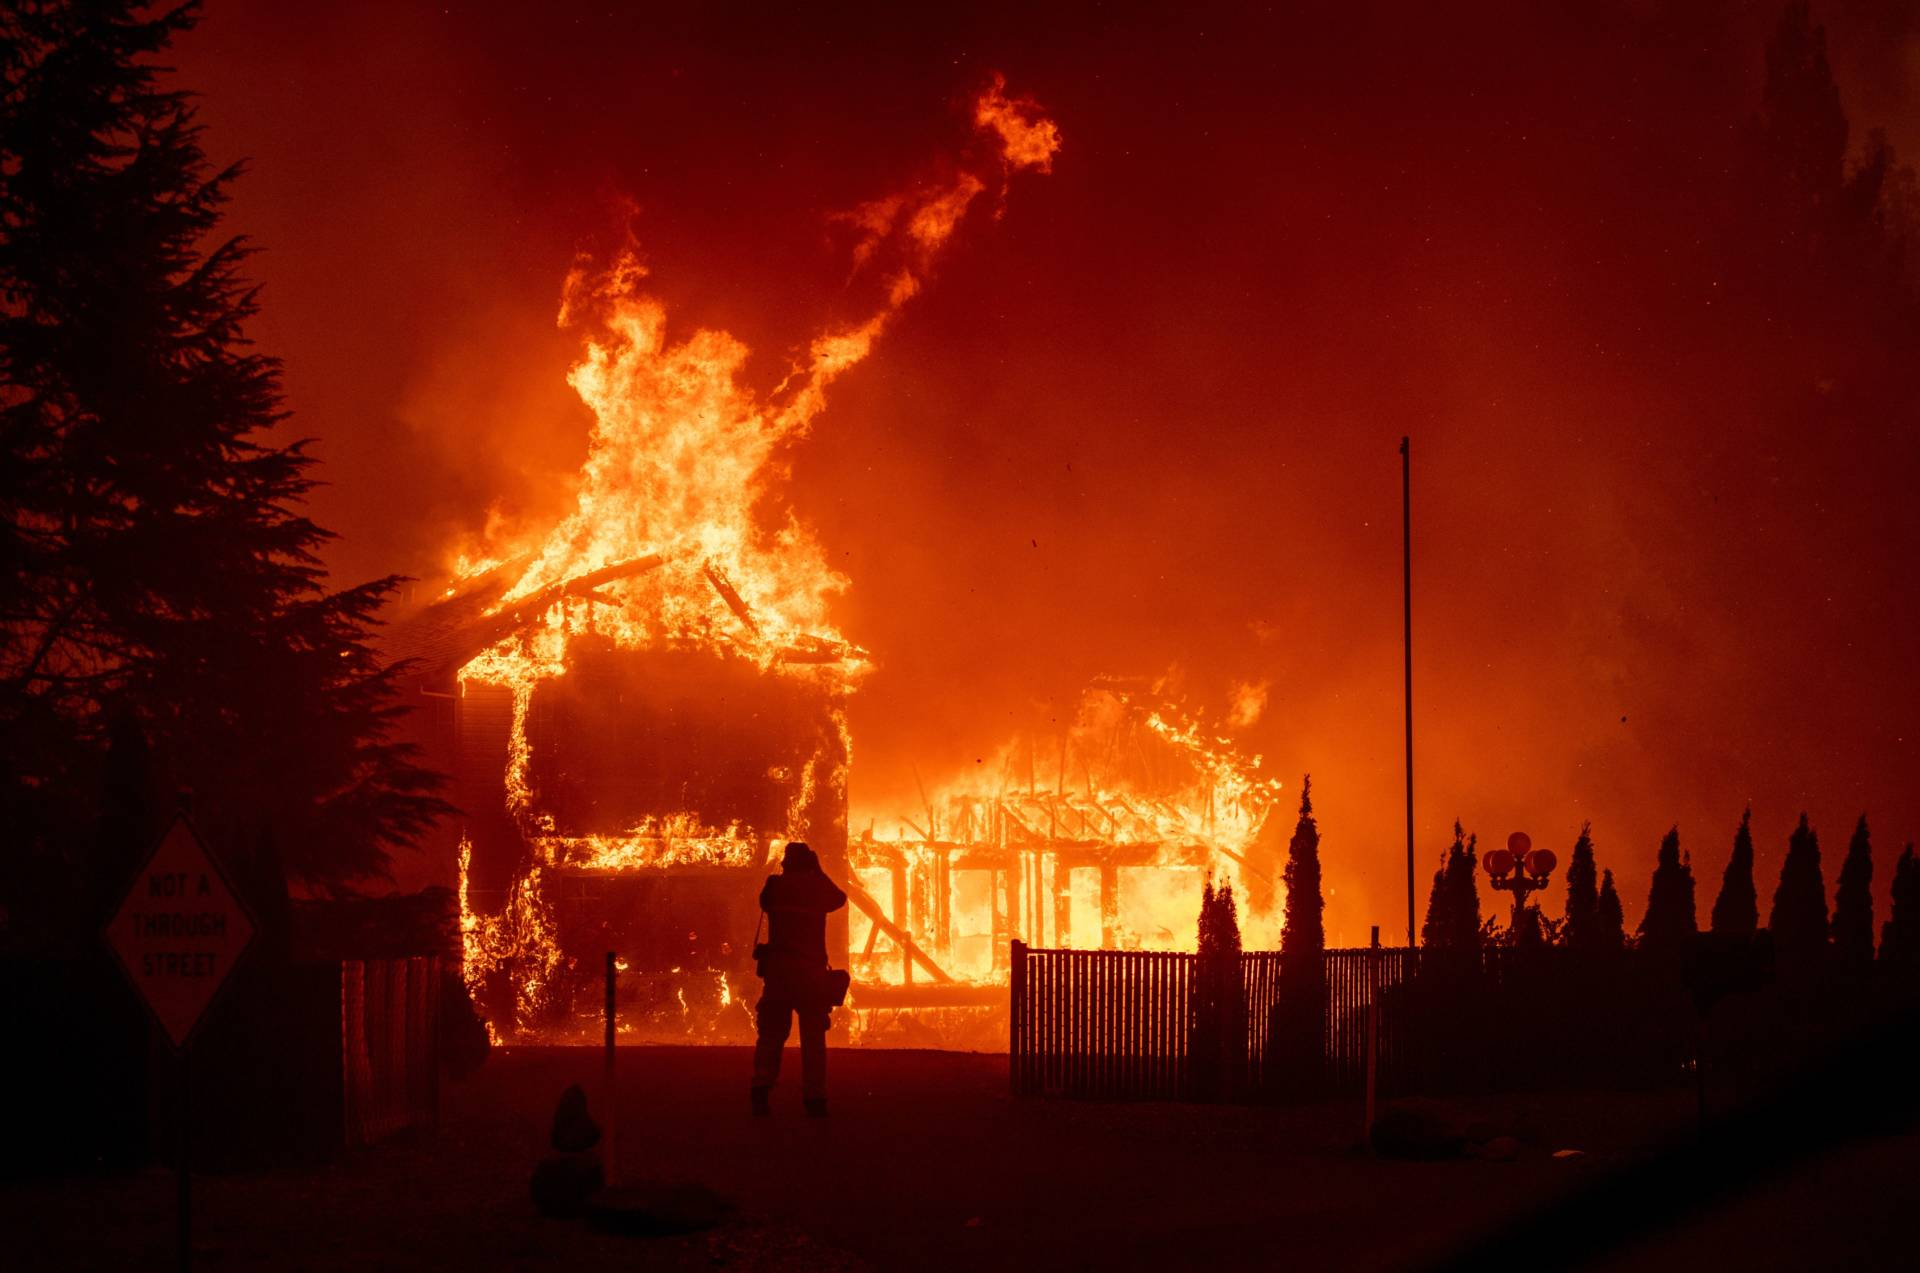 A home burns during the Camp Fire in Paradise, California on Nov. 8, 2018. Josh Edelson/AFP/Getty Images